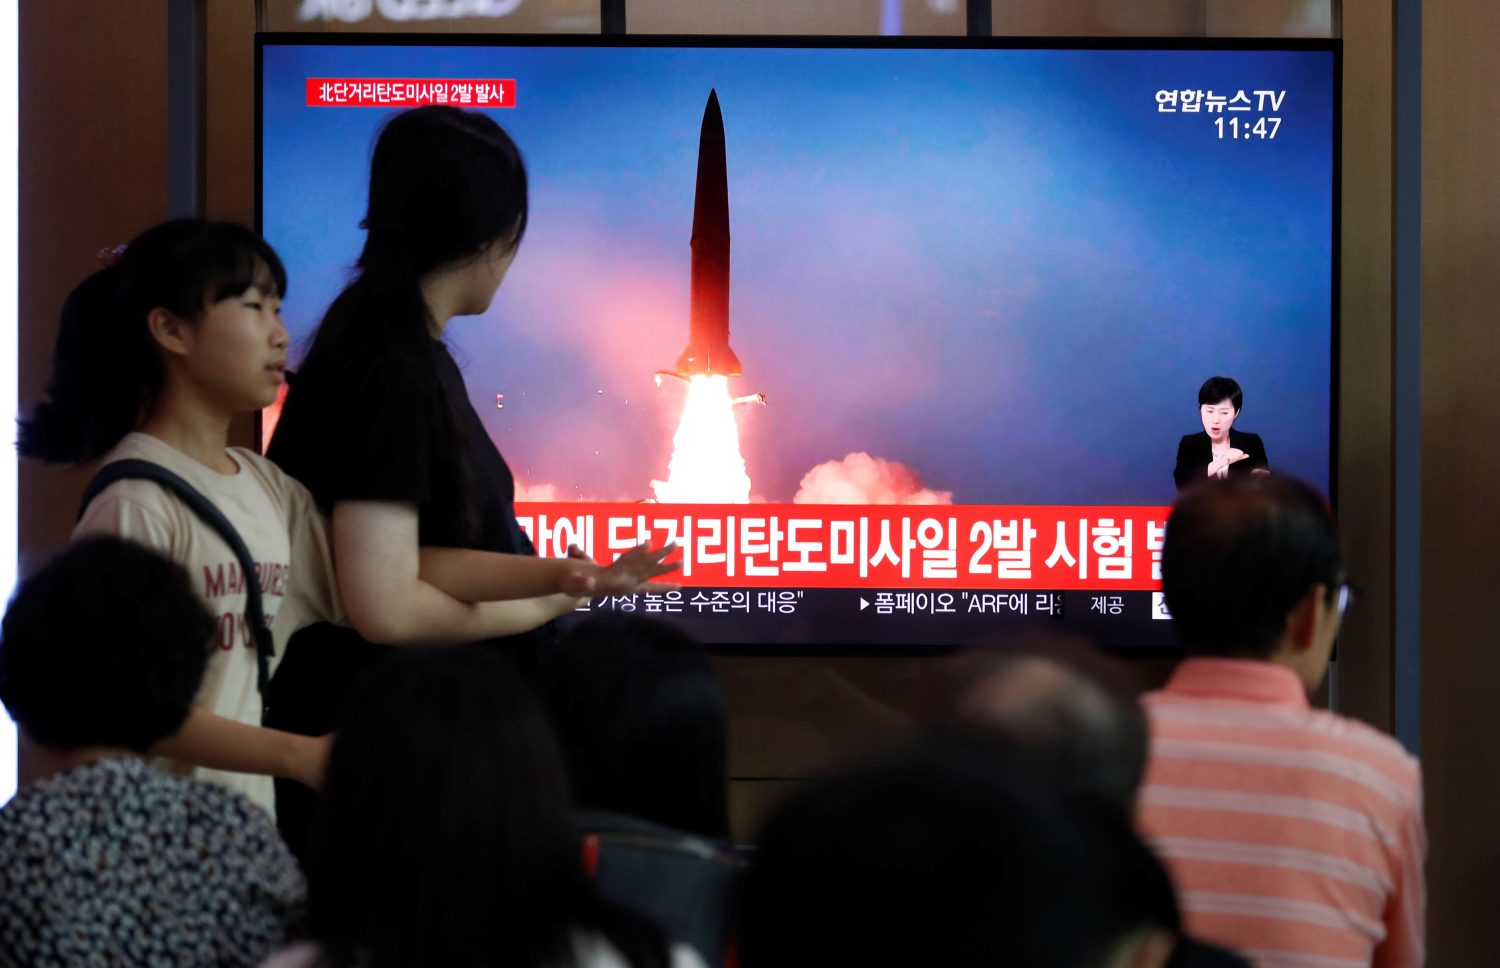 People watch a TV that shows a file picture of a North Korean missile for a news report on North Korea firing short-range ballistic missiles, in Seoul, South Korea, July 31, 2019. REUTERS/Kim Hong-Ji